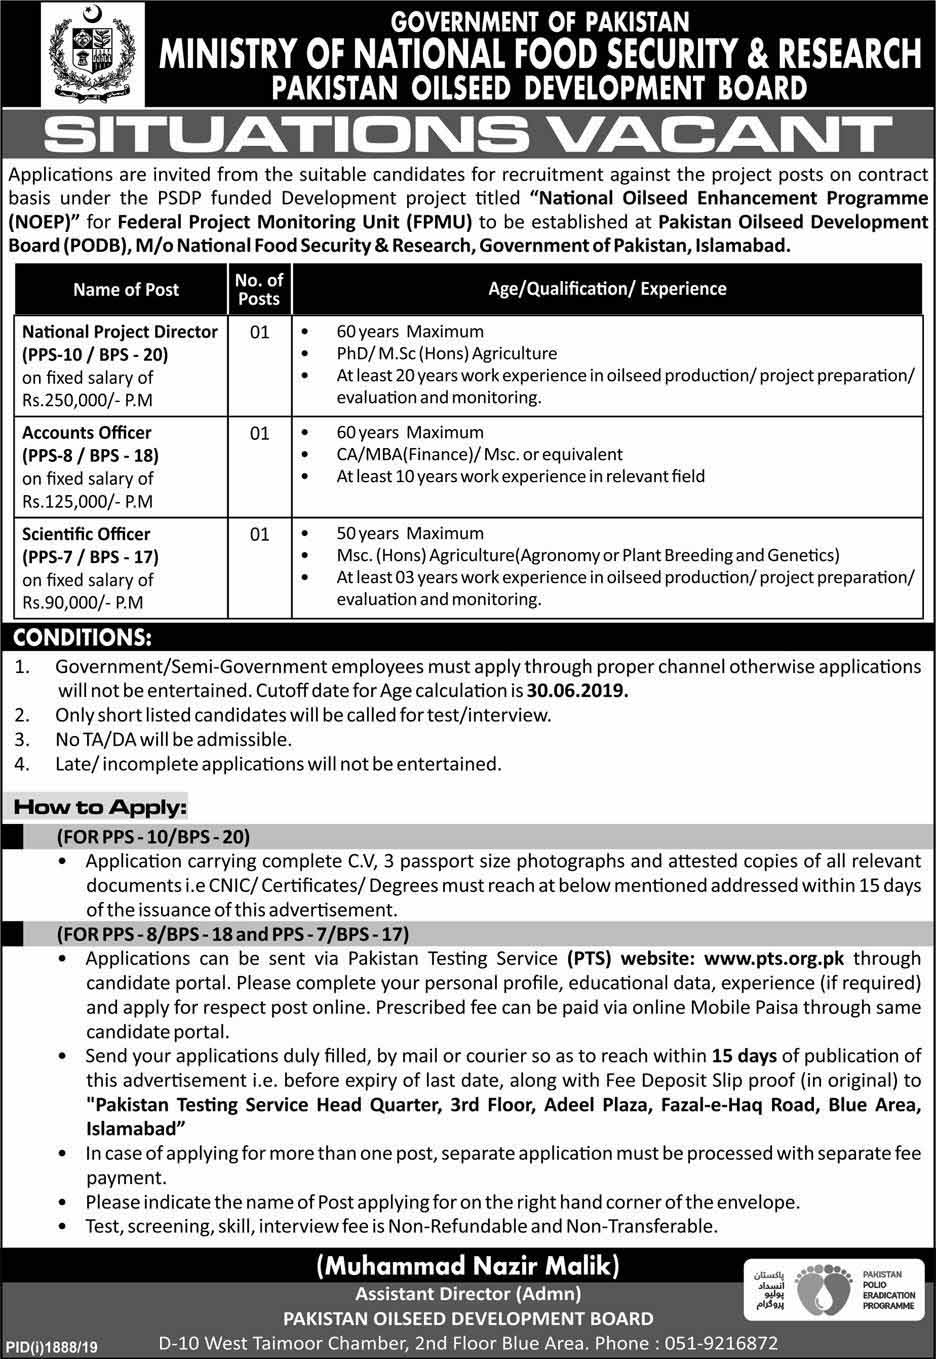 Ministry of National Food Security and Research Jobs via PTS 2019